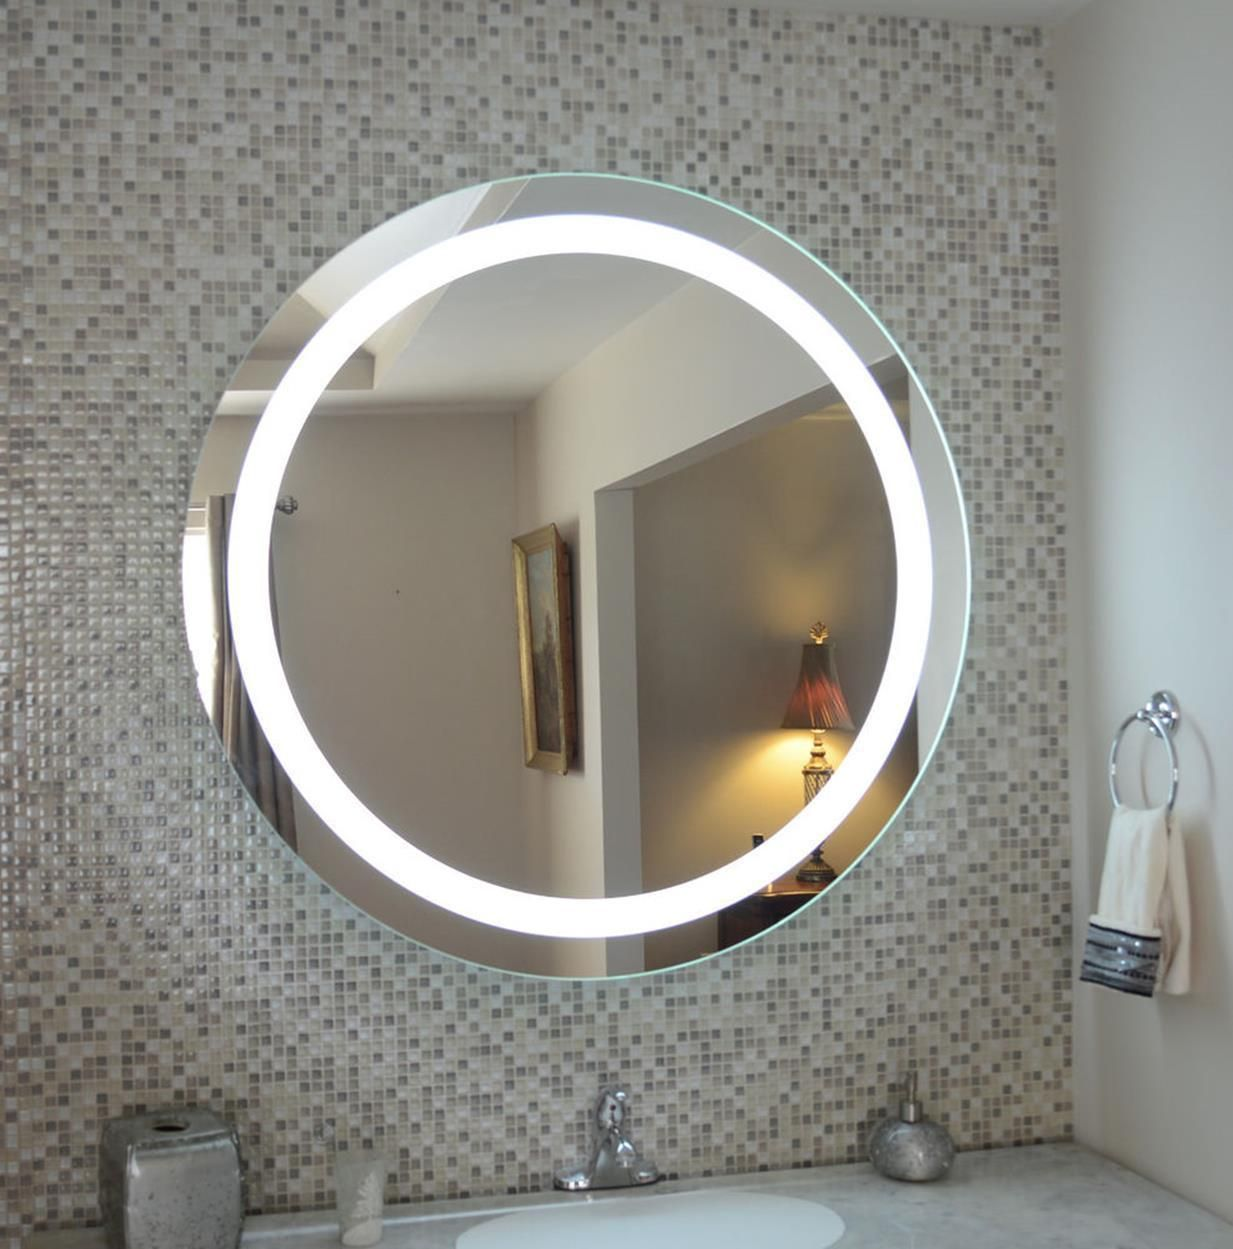 35 Stunning Bathroom Vanity Mirrors With Light Designs Have Fun Decor Led Mirror Bathroom Round Mirror Bathroom Fancy Bathroom